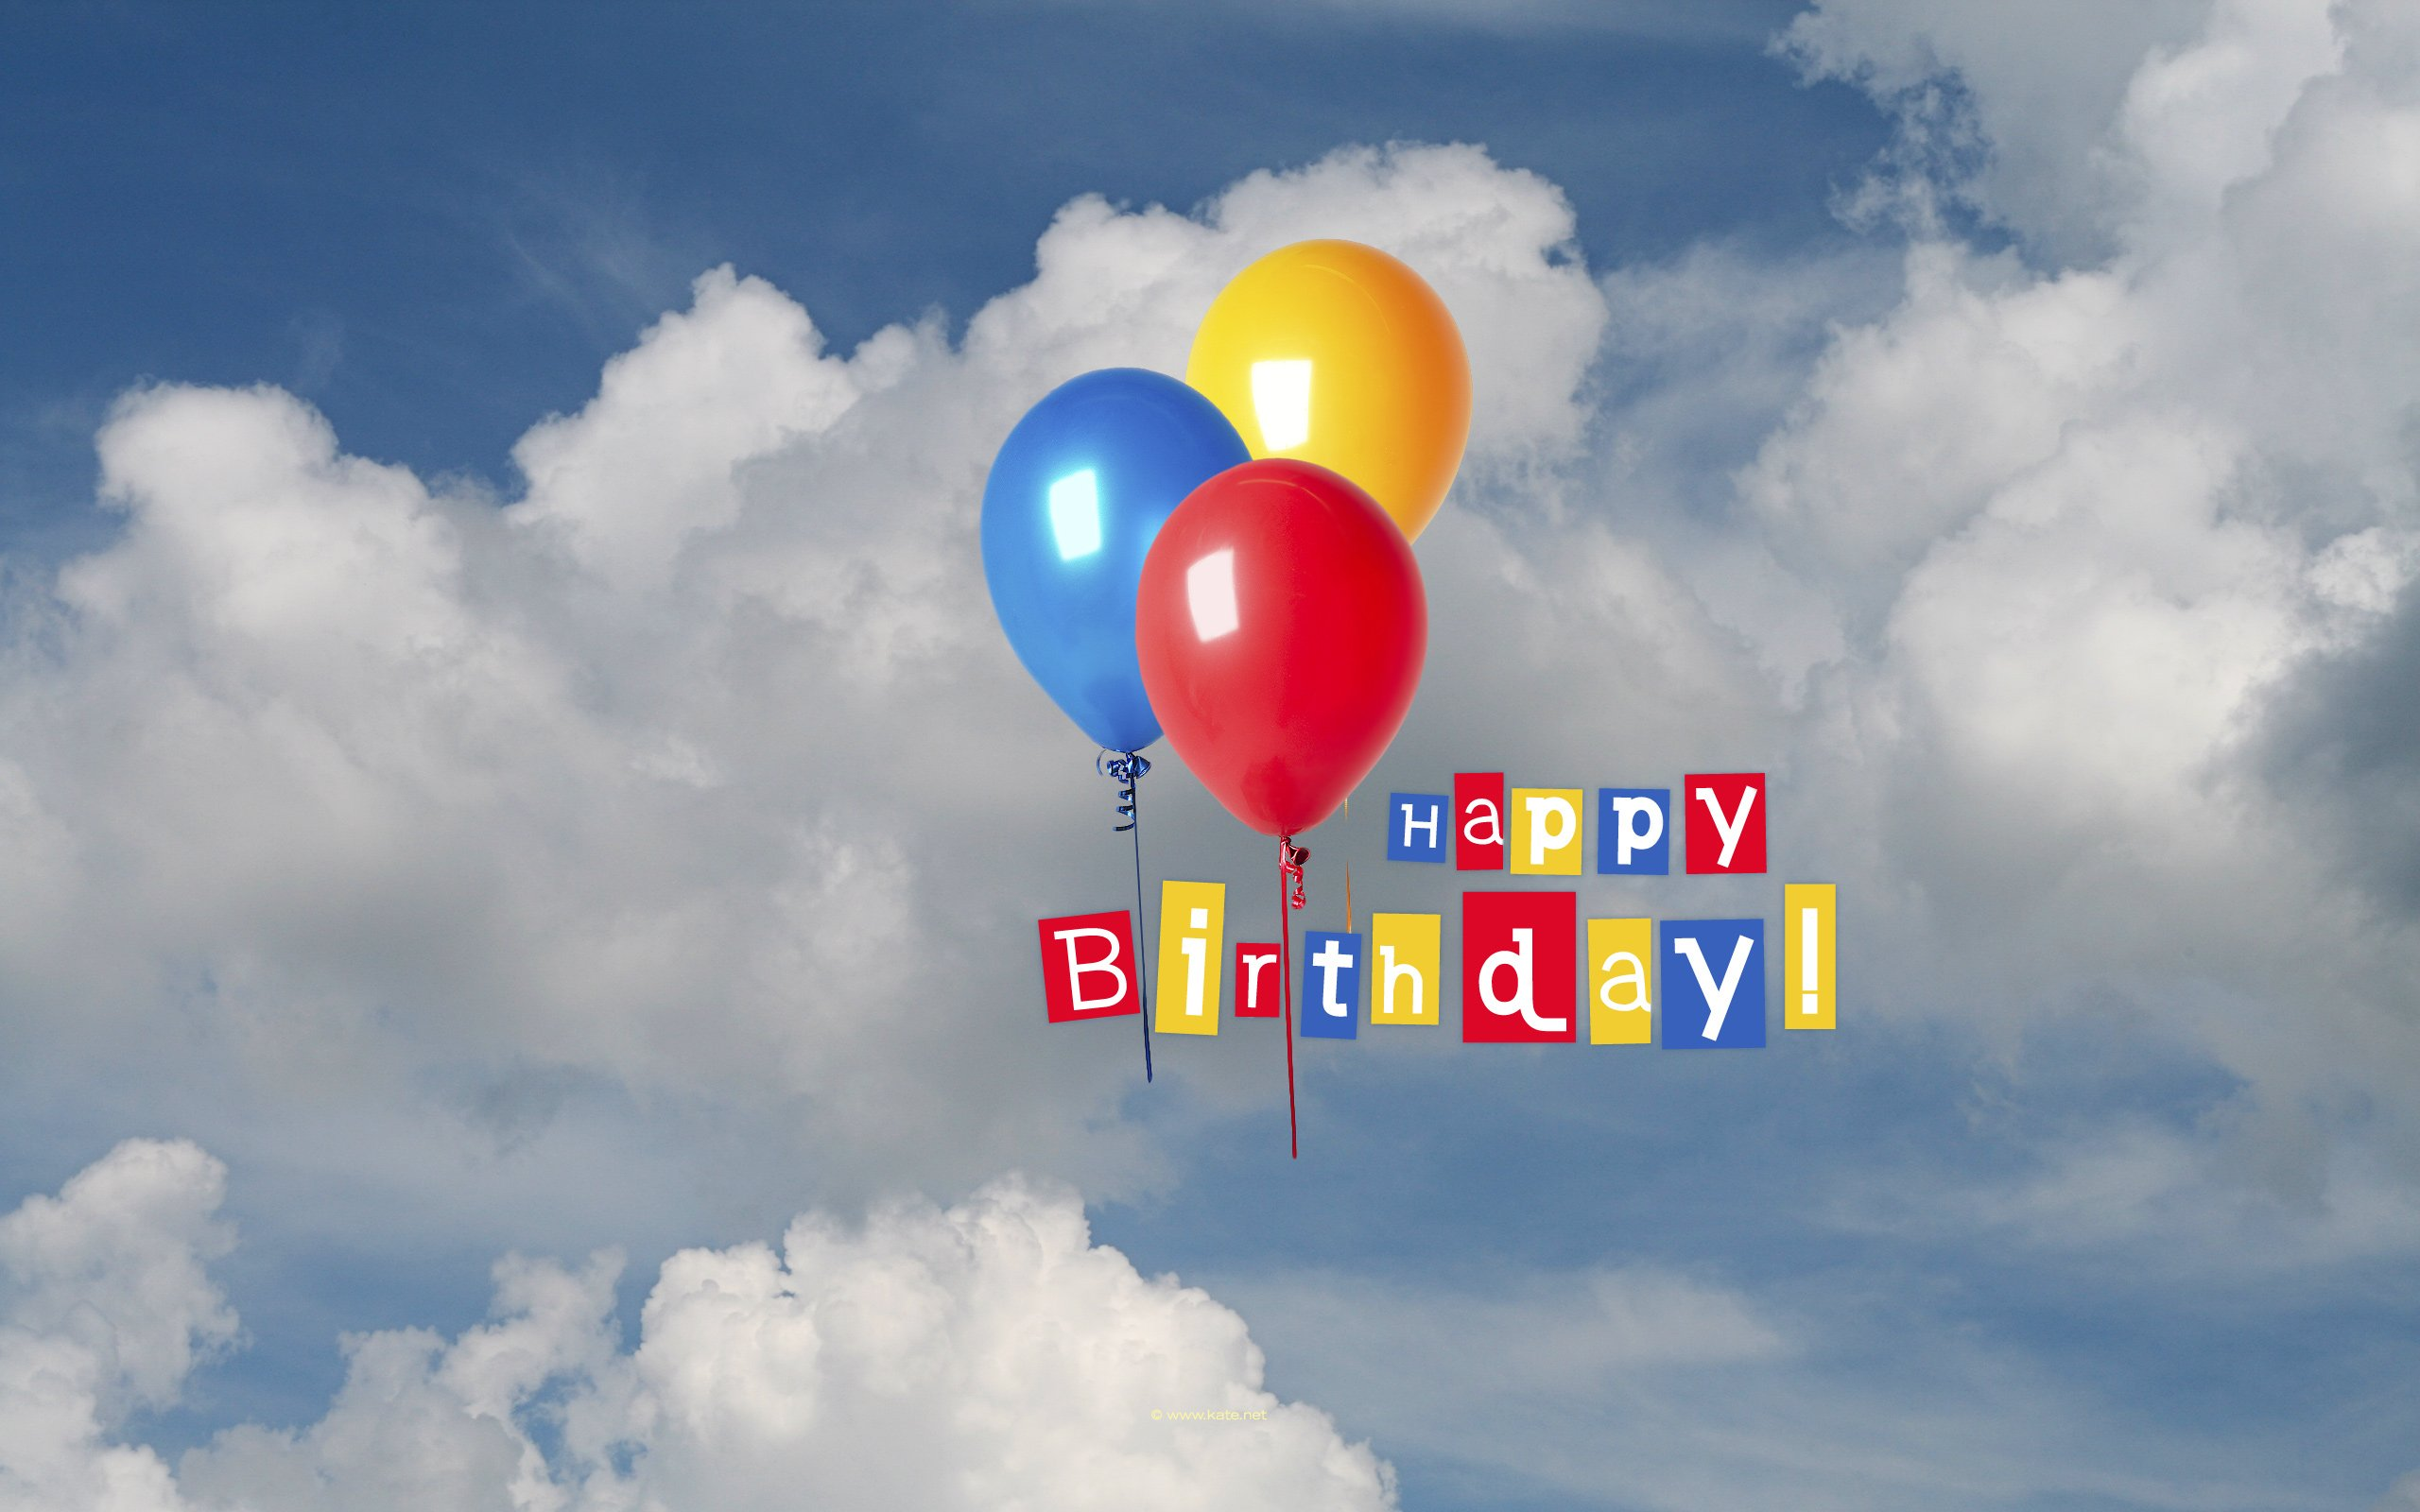 Birthday HD Wallpapers Birthday HD Wallpapers Download 2560x1600